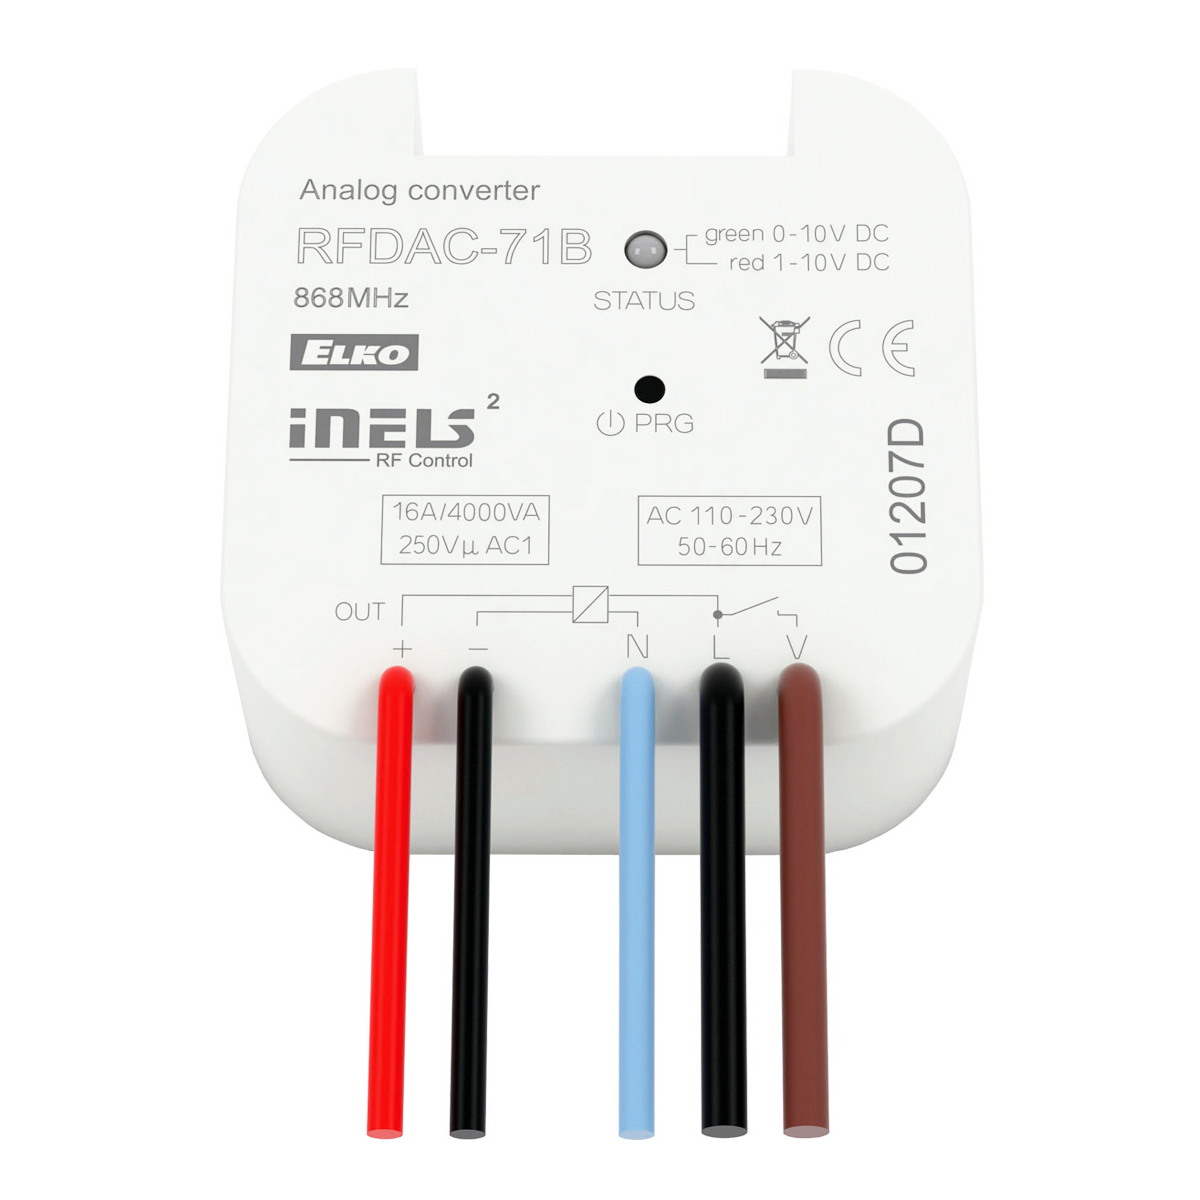 Analog Controller Rfdac 71b Elkoep Related Links More Circuit About Dimmer Lamps Downloads